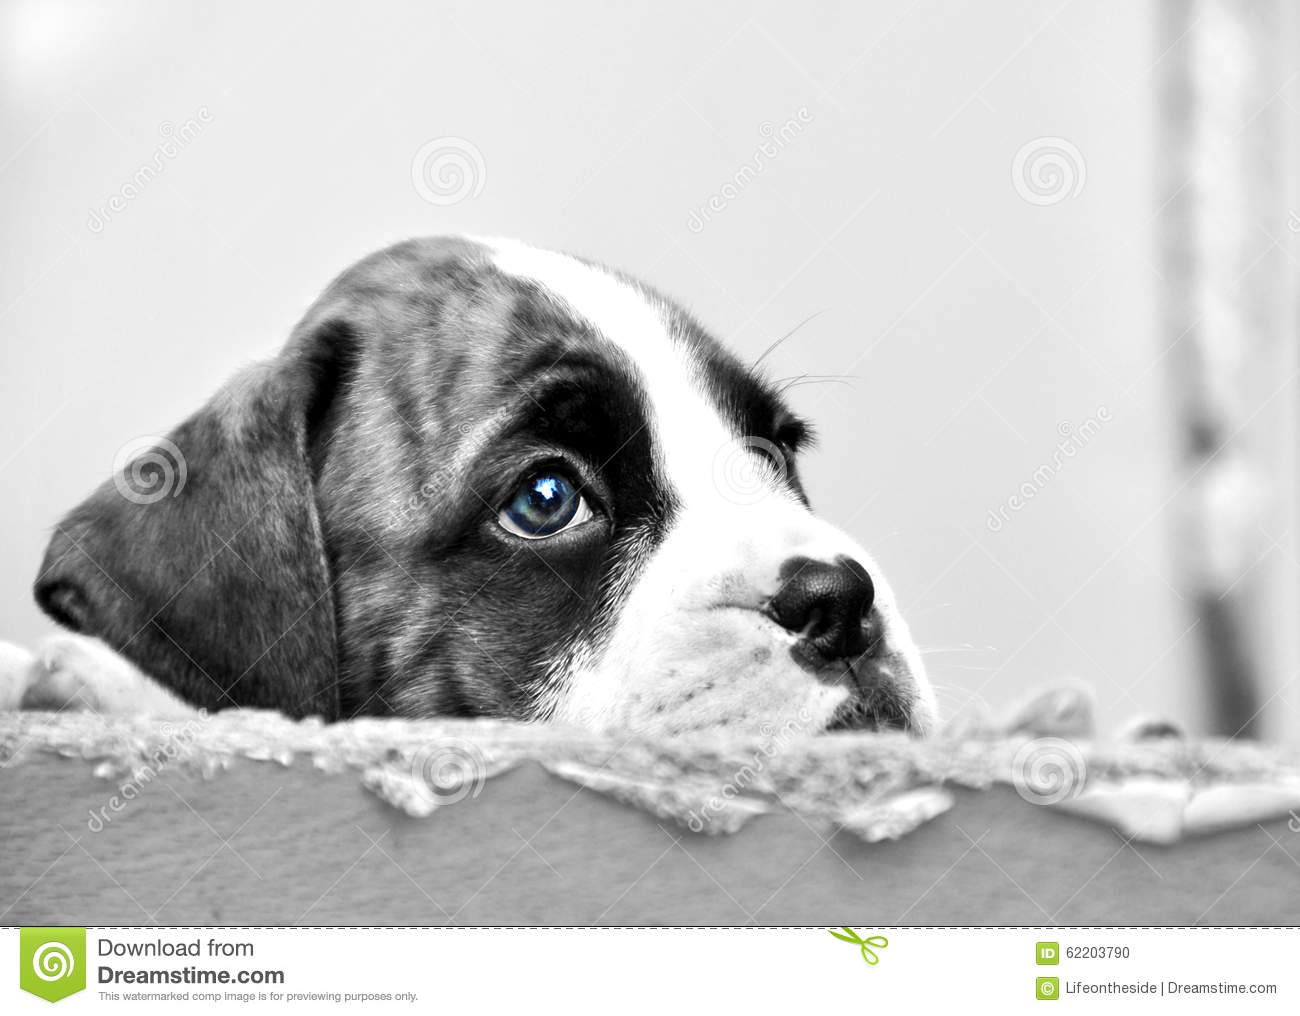 Sad face eyes little boxer puppy dog hoping to be chosen for new forever home